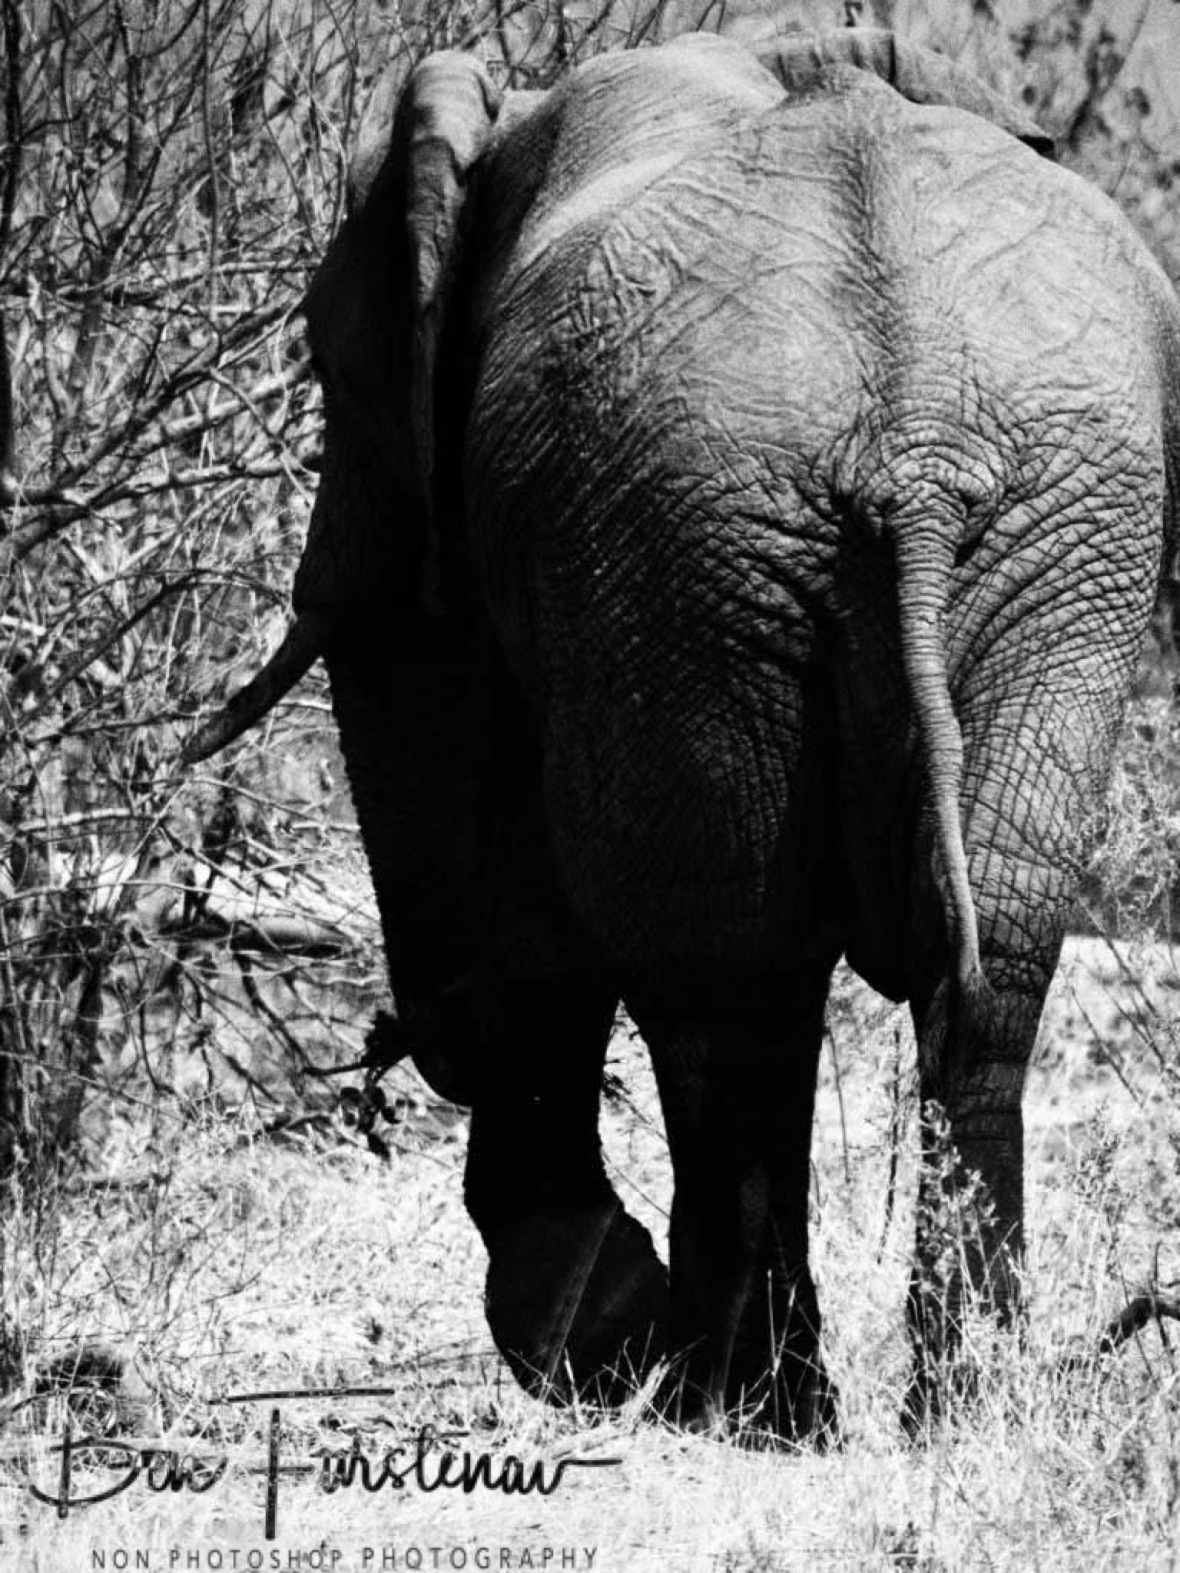 Moving back in to the jungle book, Moremi National Park, Botswana